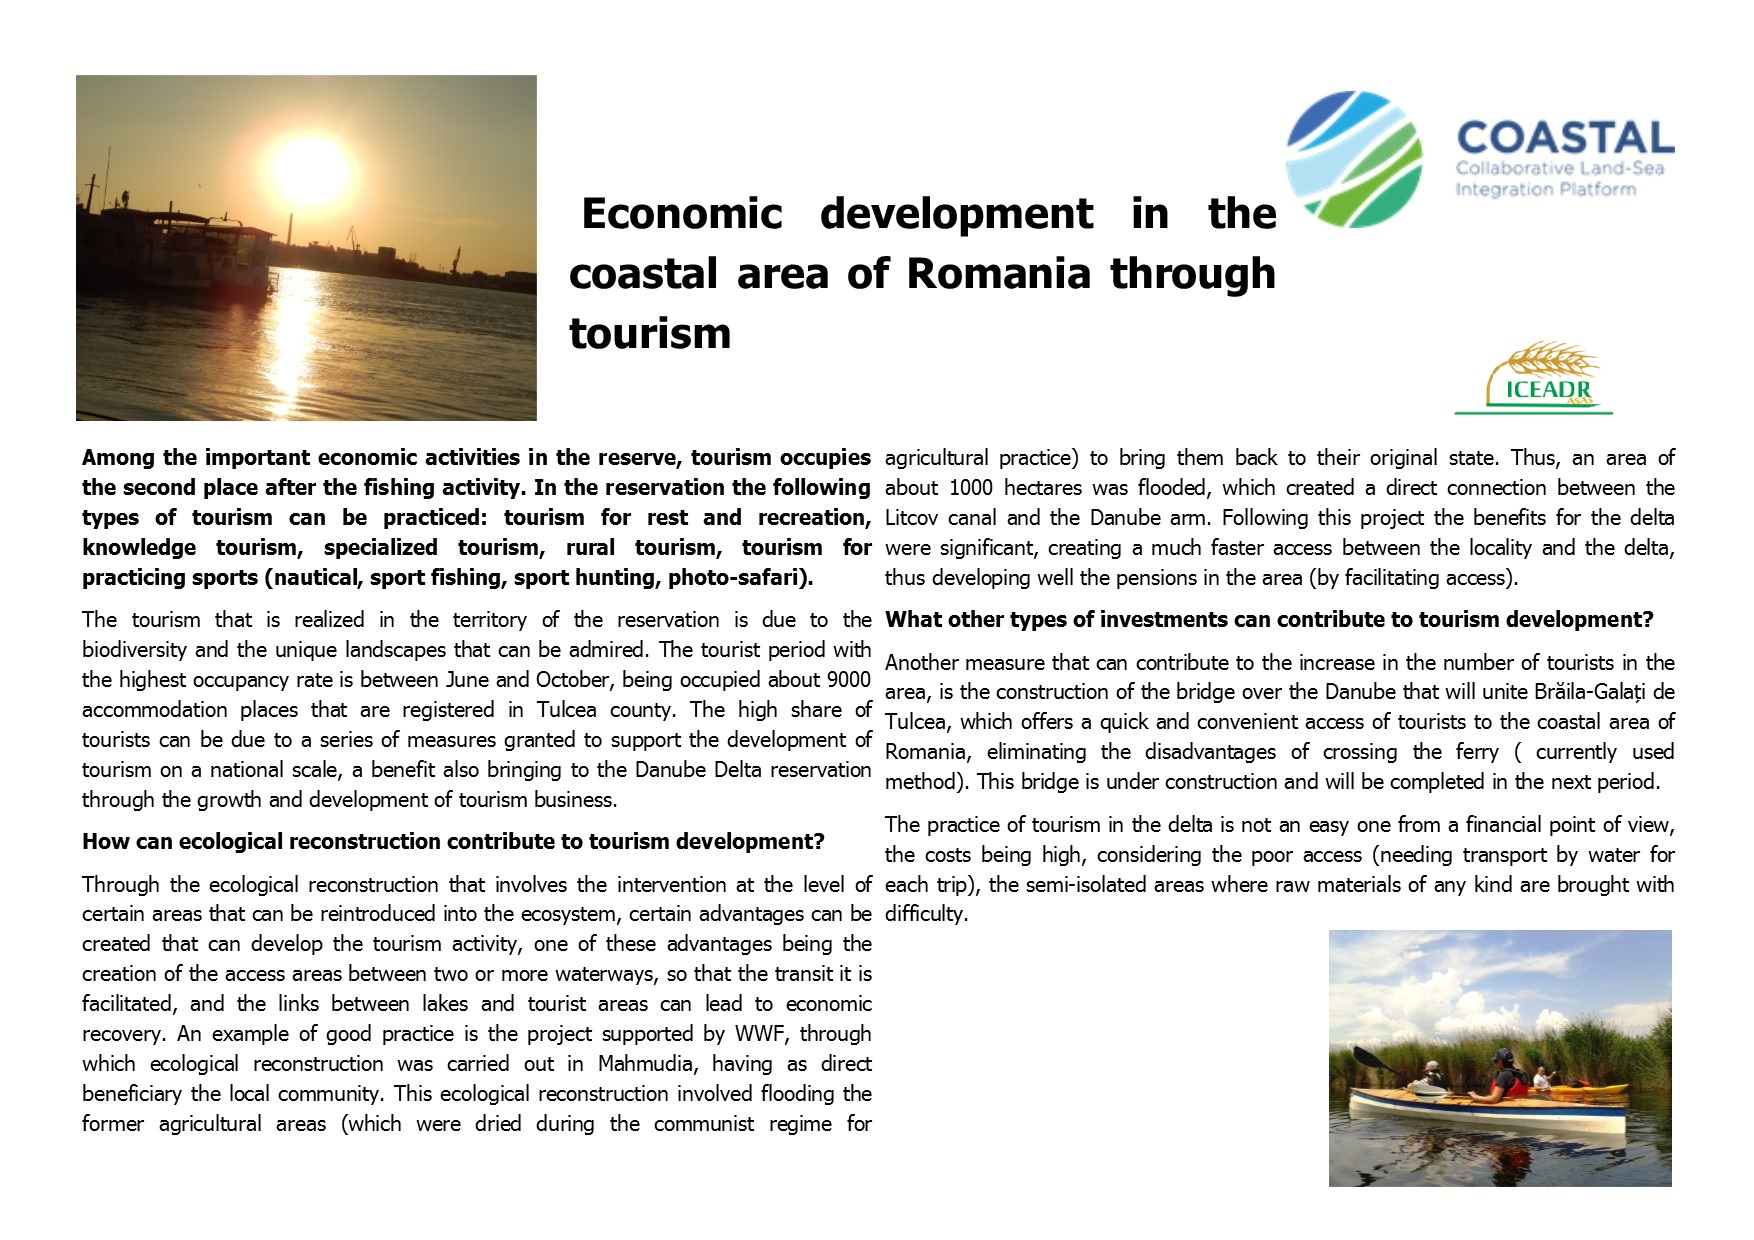 Economic development in the coastal area of Romania through tourism